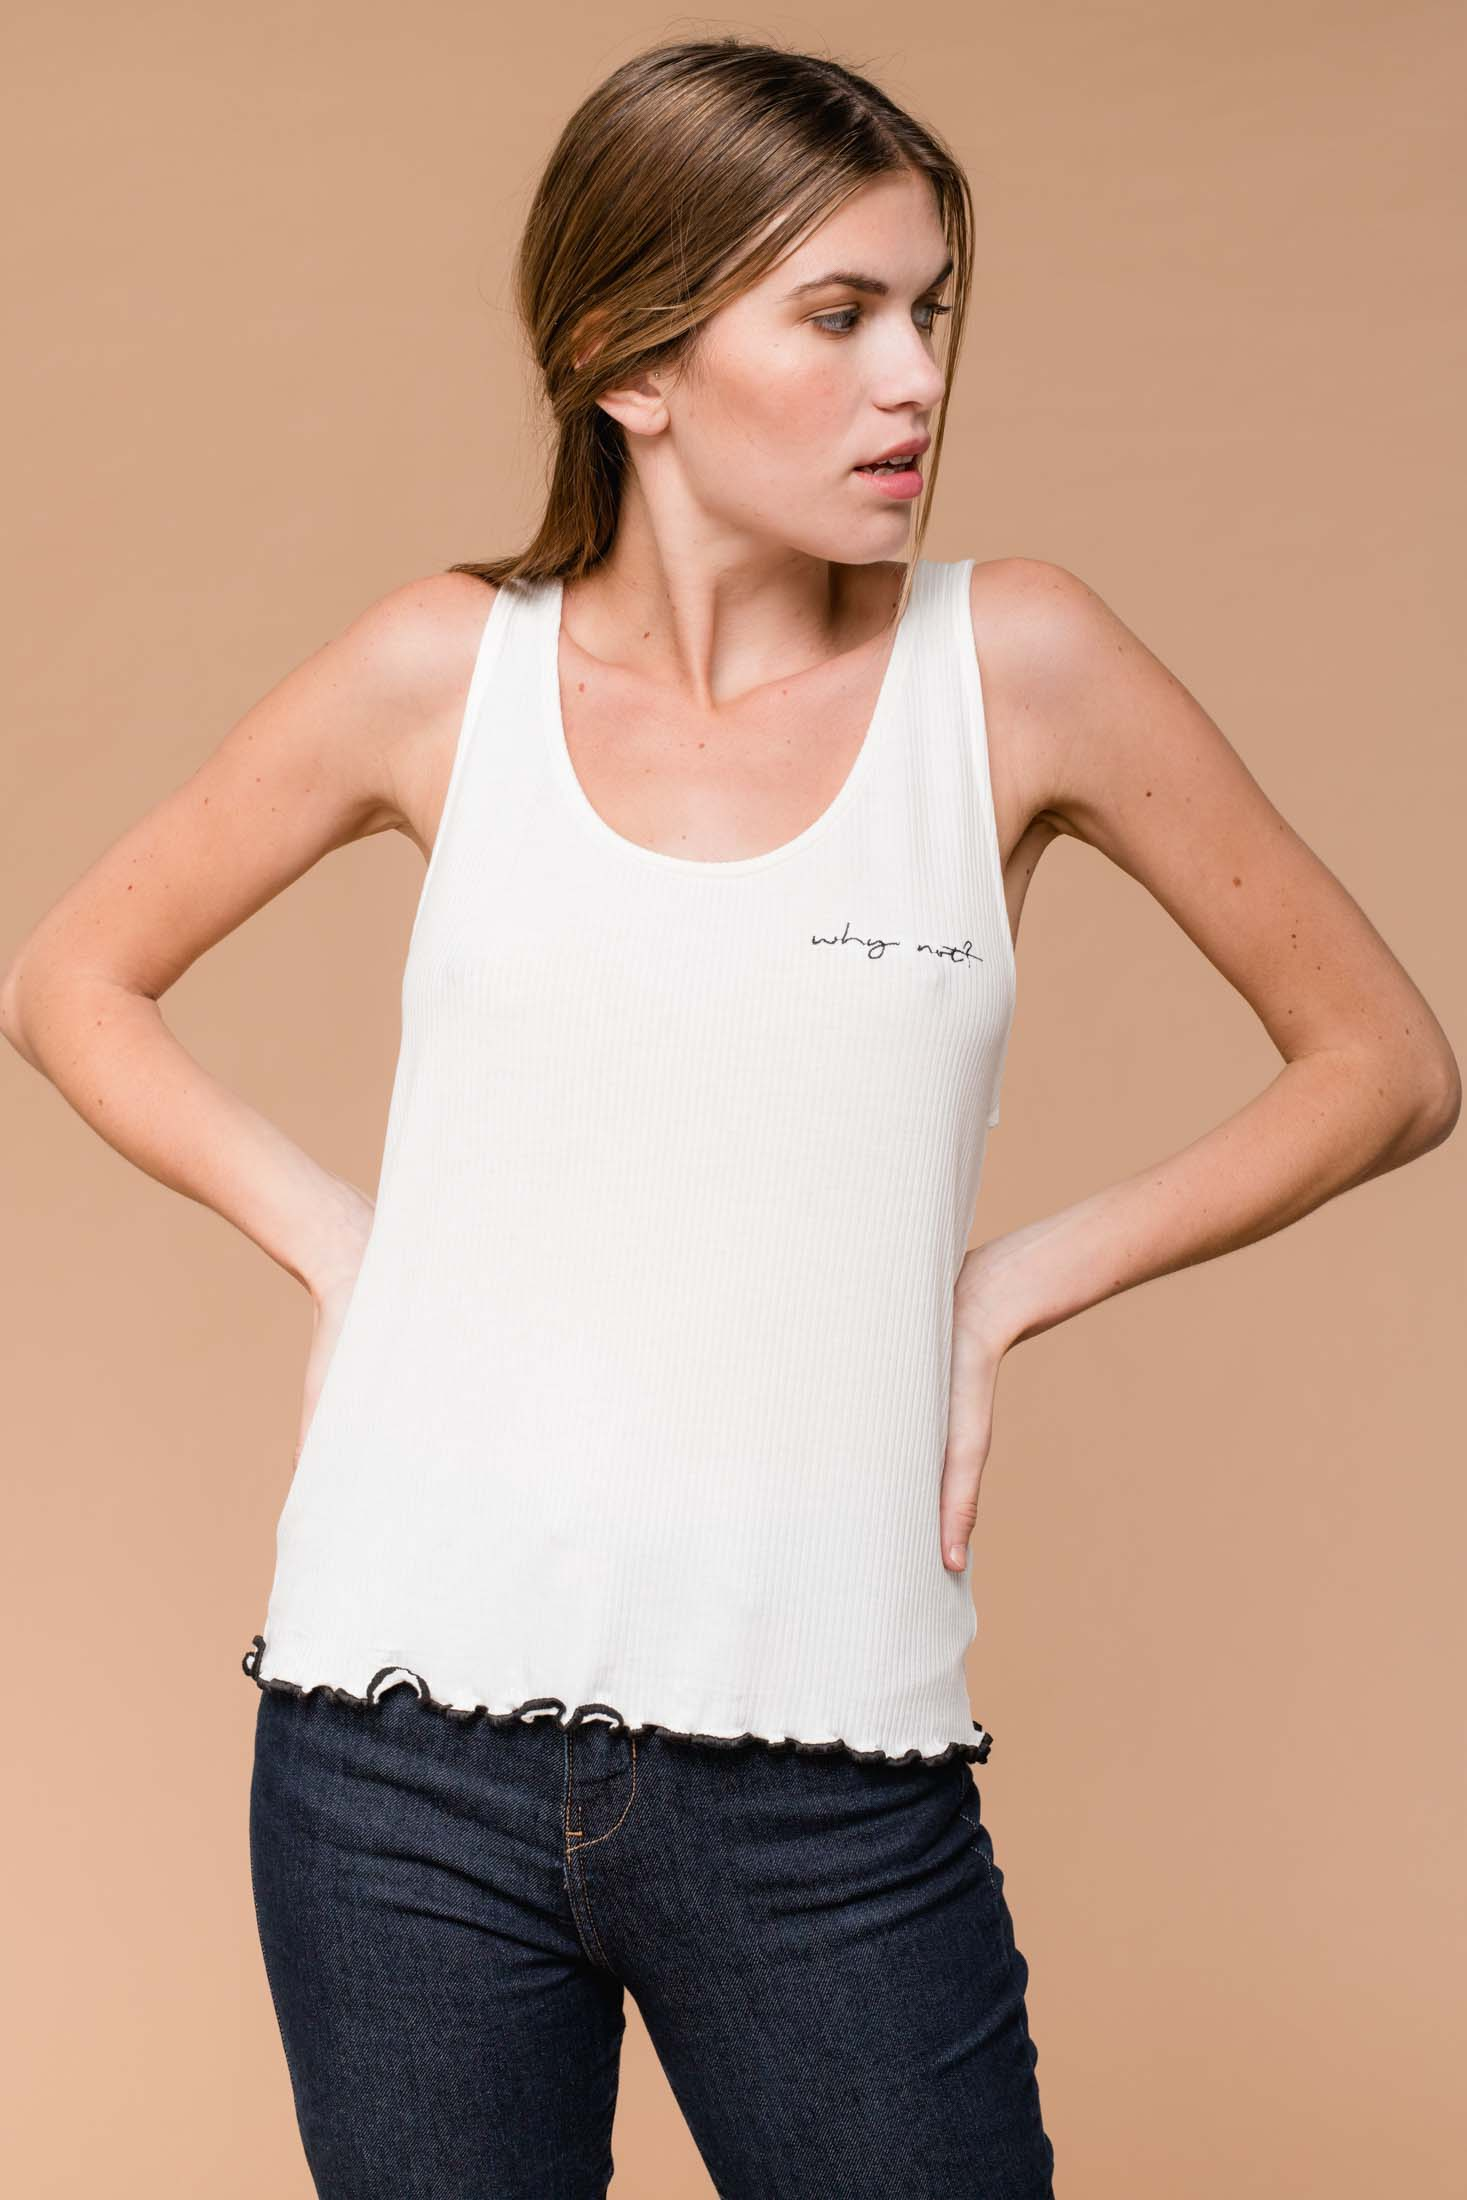 Musculosa WHY NOT